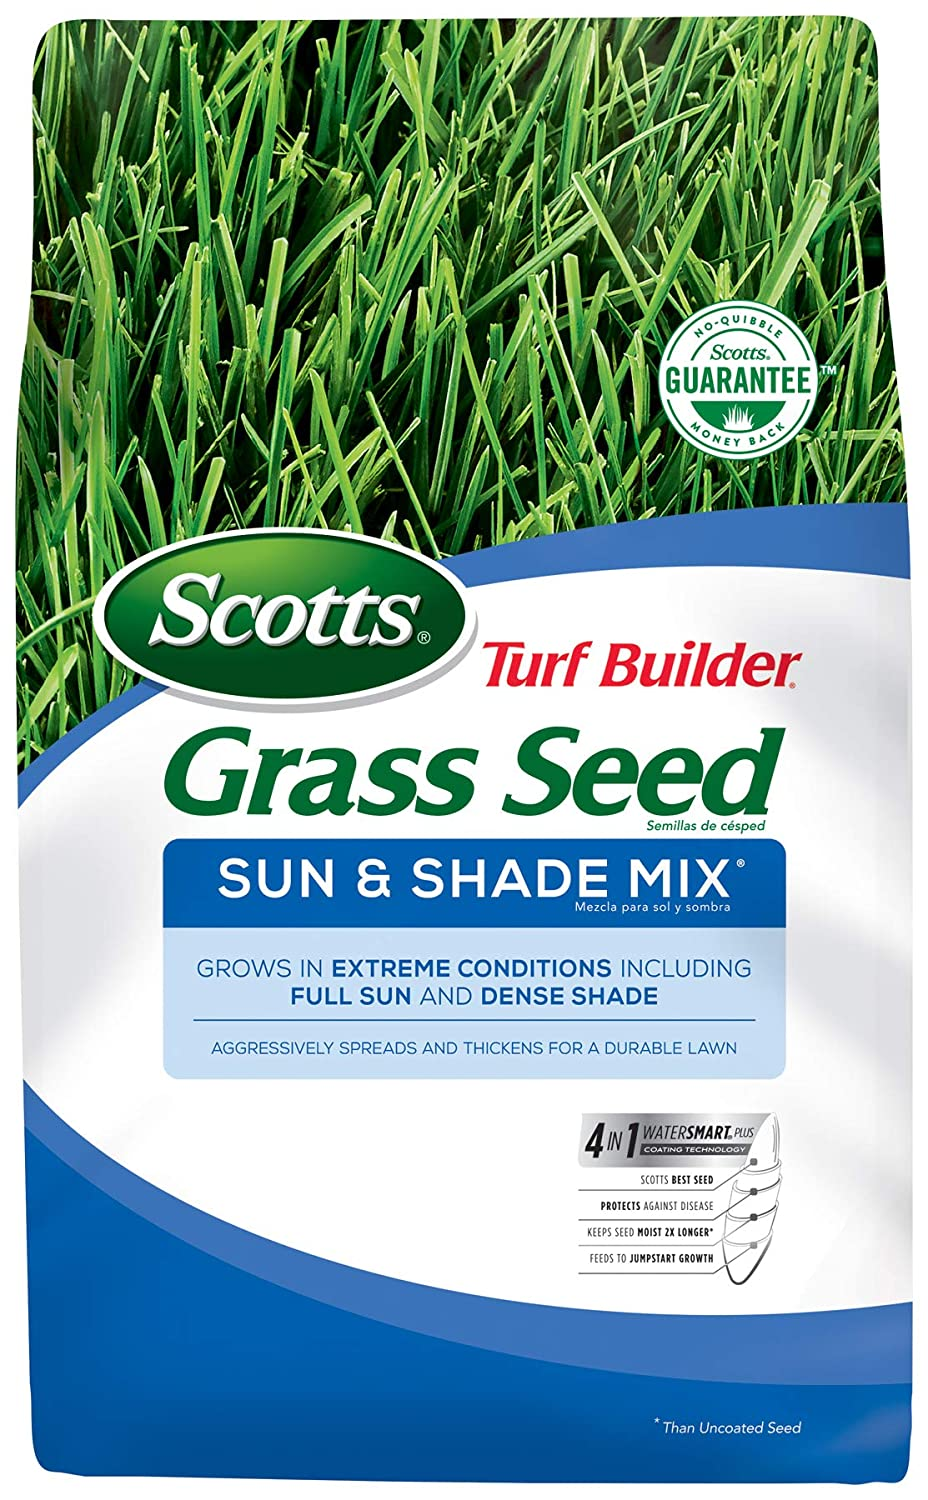 Scotts Turf Builder Grass Seed Sun & Shade Mix - 3 lbs | Grows In Extreme Conditions Including Full Sun & Dense Shade |Use to Seed New Lawn or Overseed Existing Lawn | Spreads & Thickens For A Durable Lawn